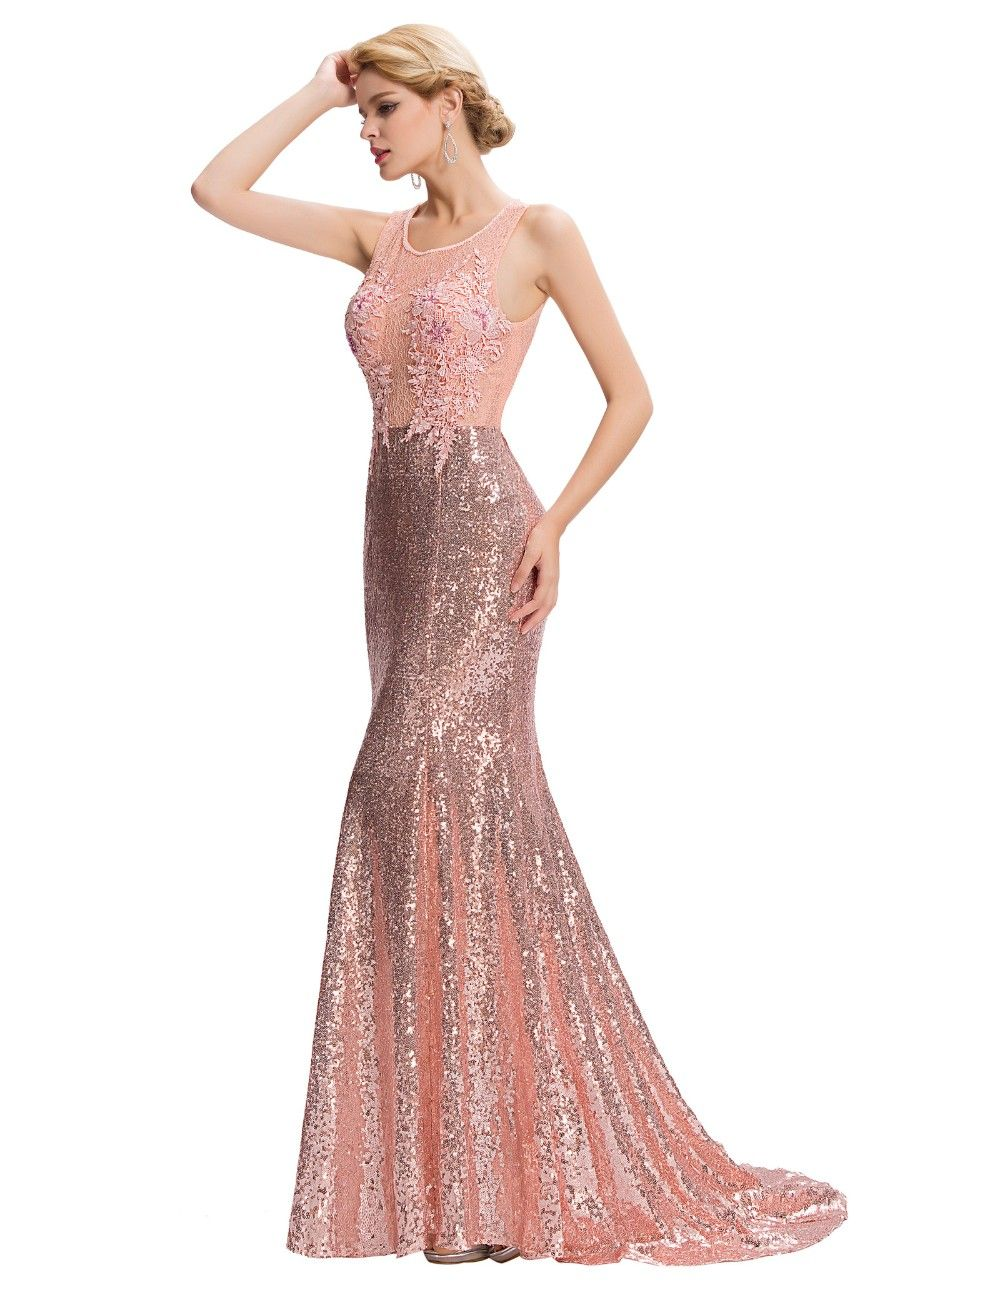 Elegant Pink Sequin Floor Length Backless Lace Mermaid Evening Dress